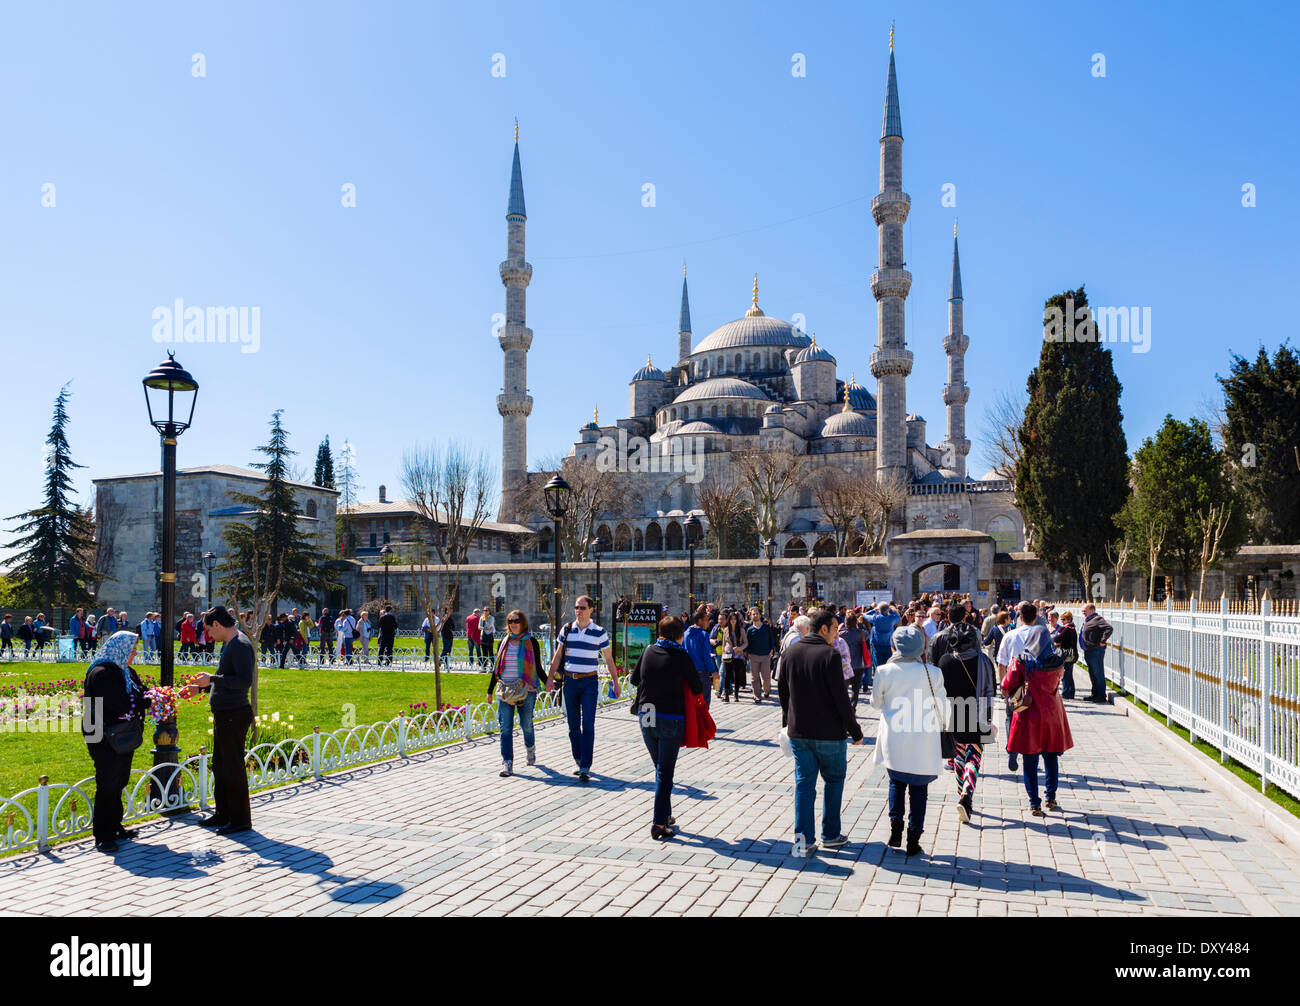 Crowds in front of the Blue Mosque (Sultanahmet Camii), Sultanahmet district, Istanbul,Turkey - Stock Image